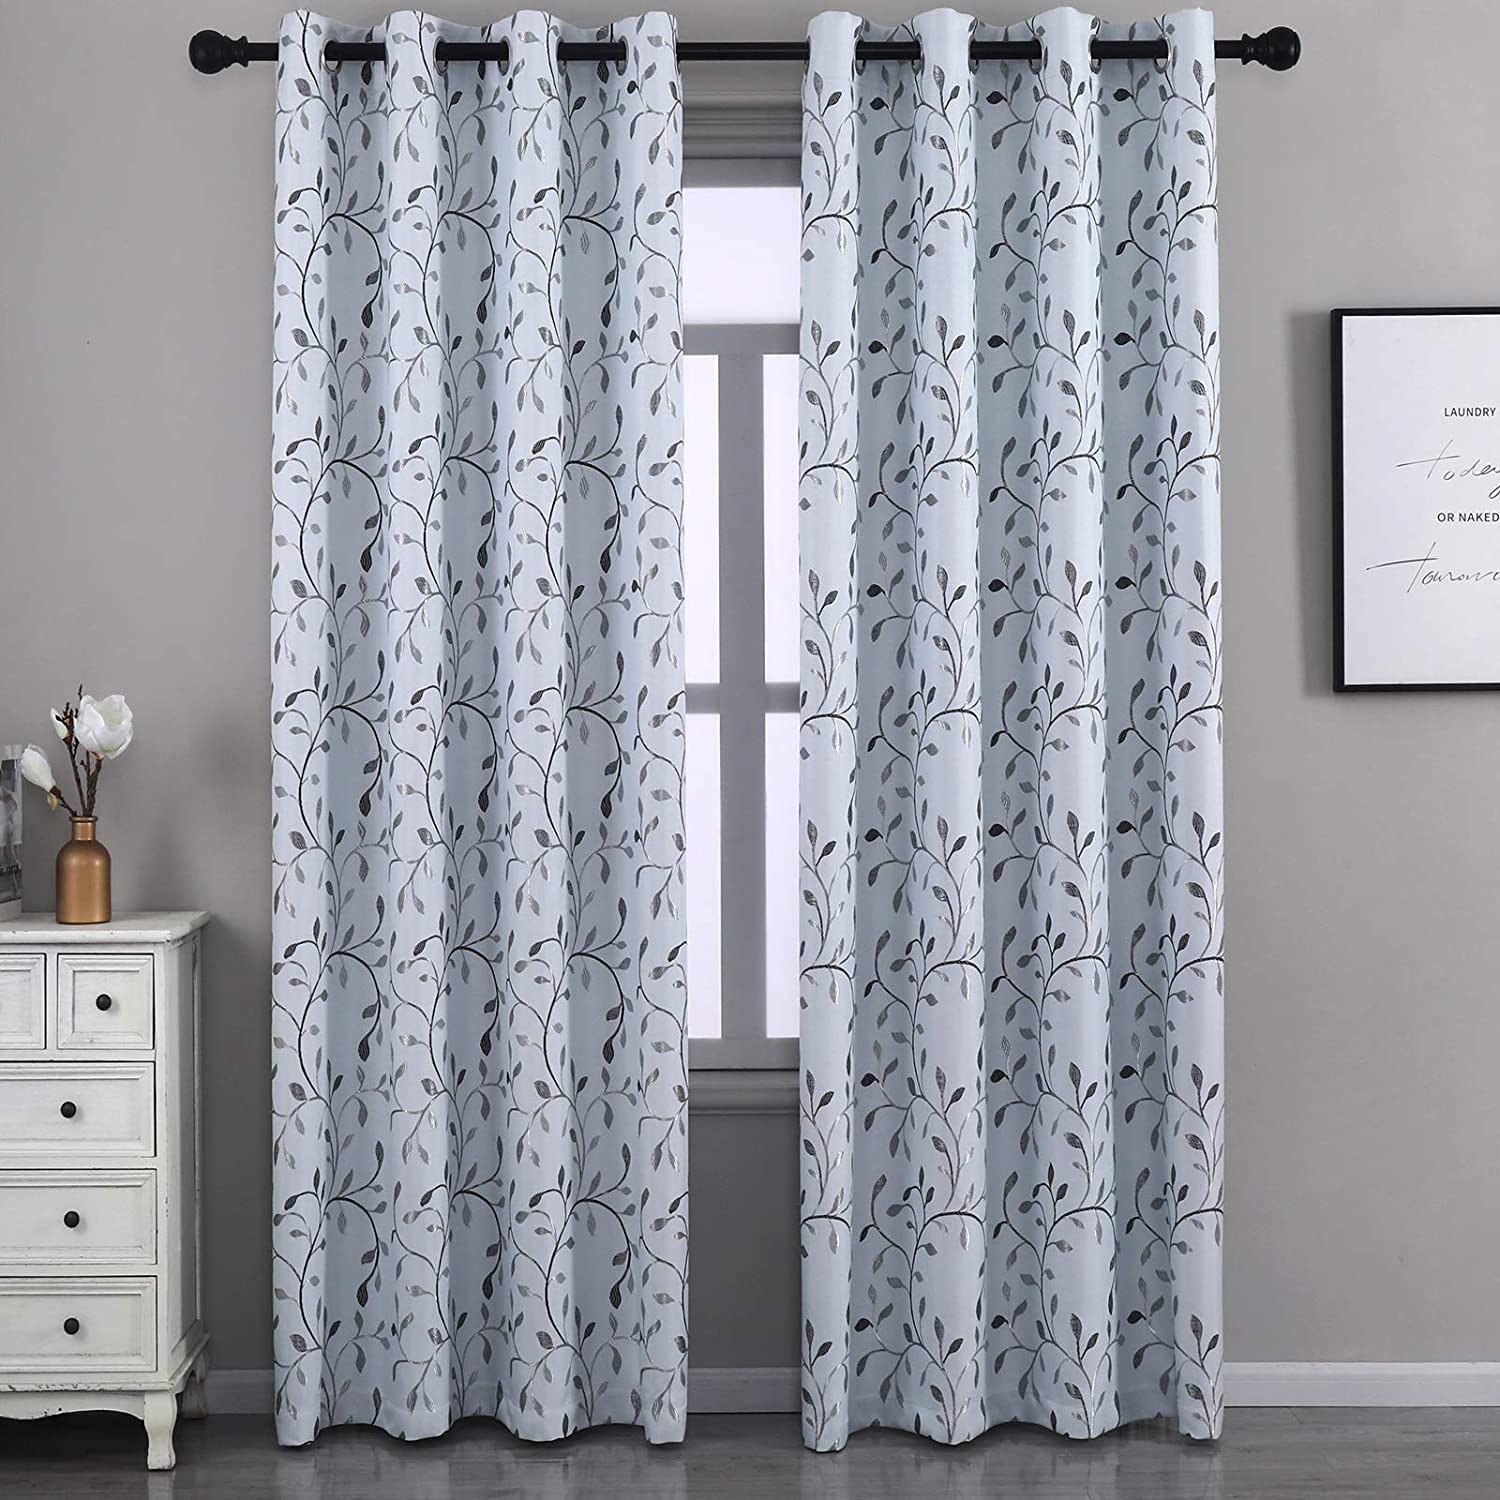 GYROHOME Floral Blackout Curtain with 最安値挑戦 Leaf お買得 Grommet Embroidery To